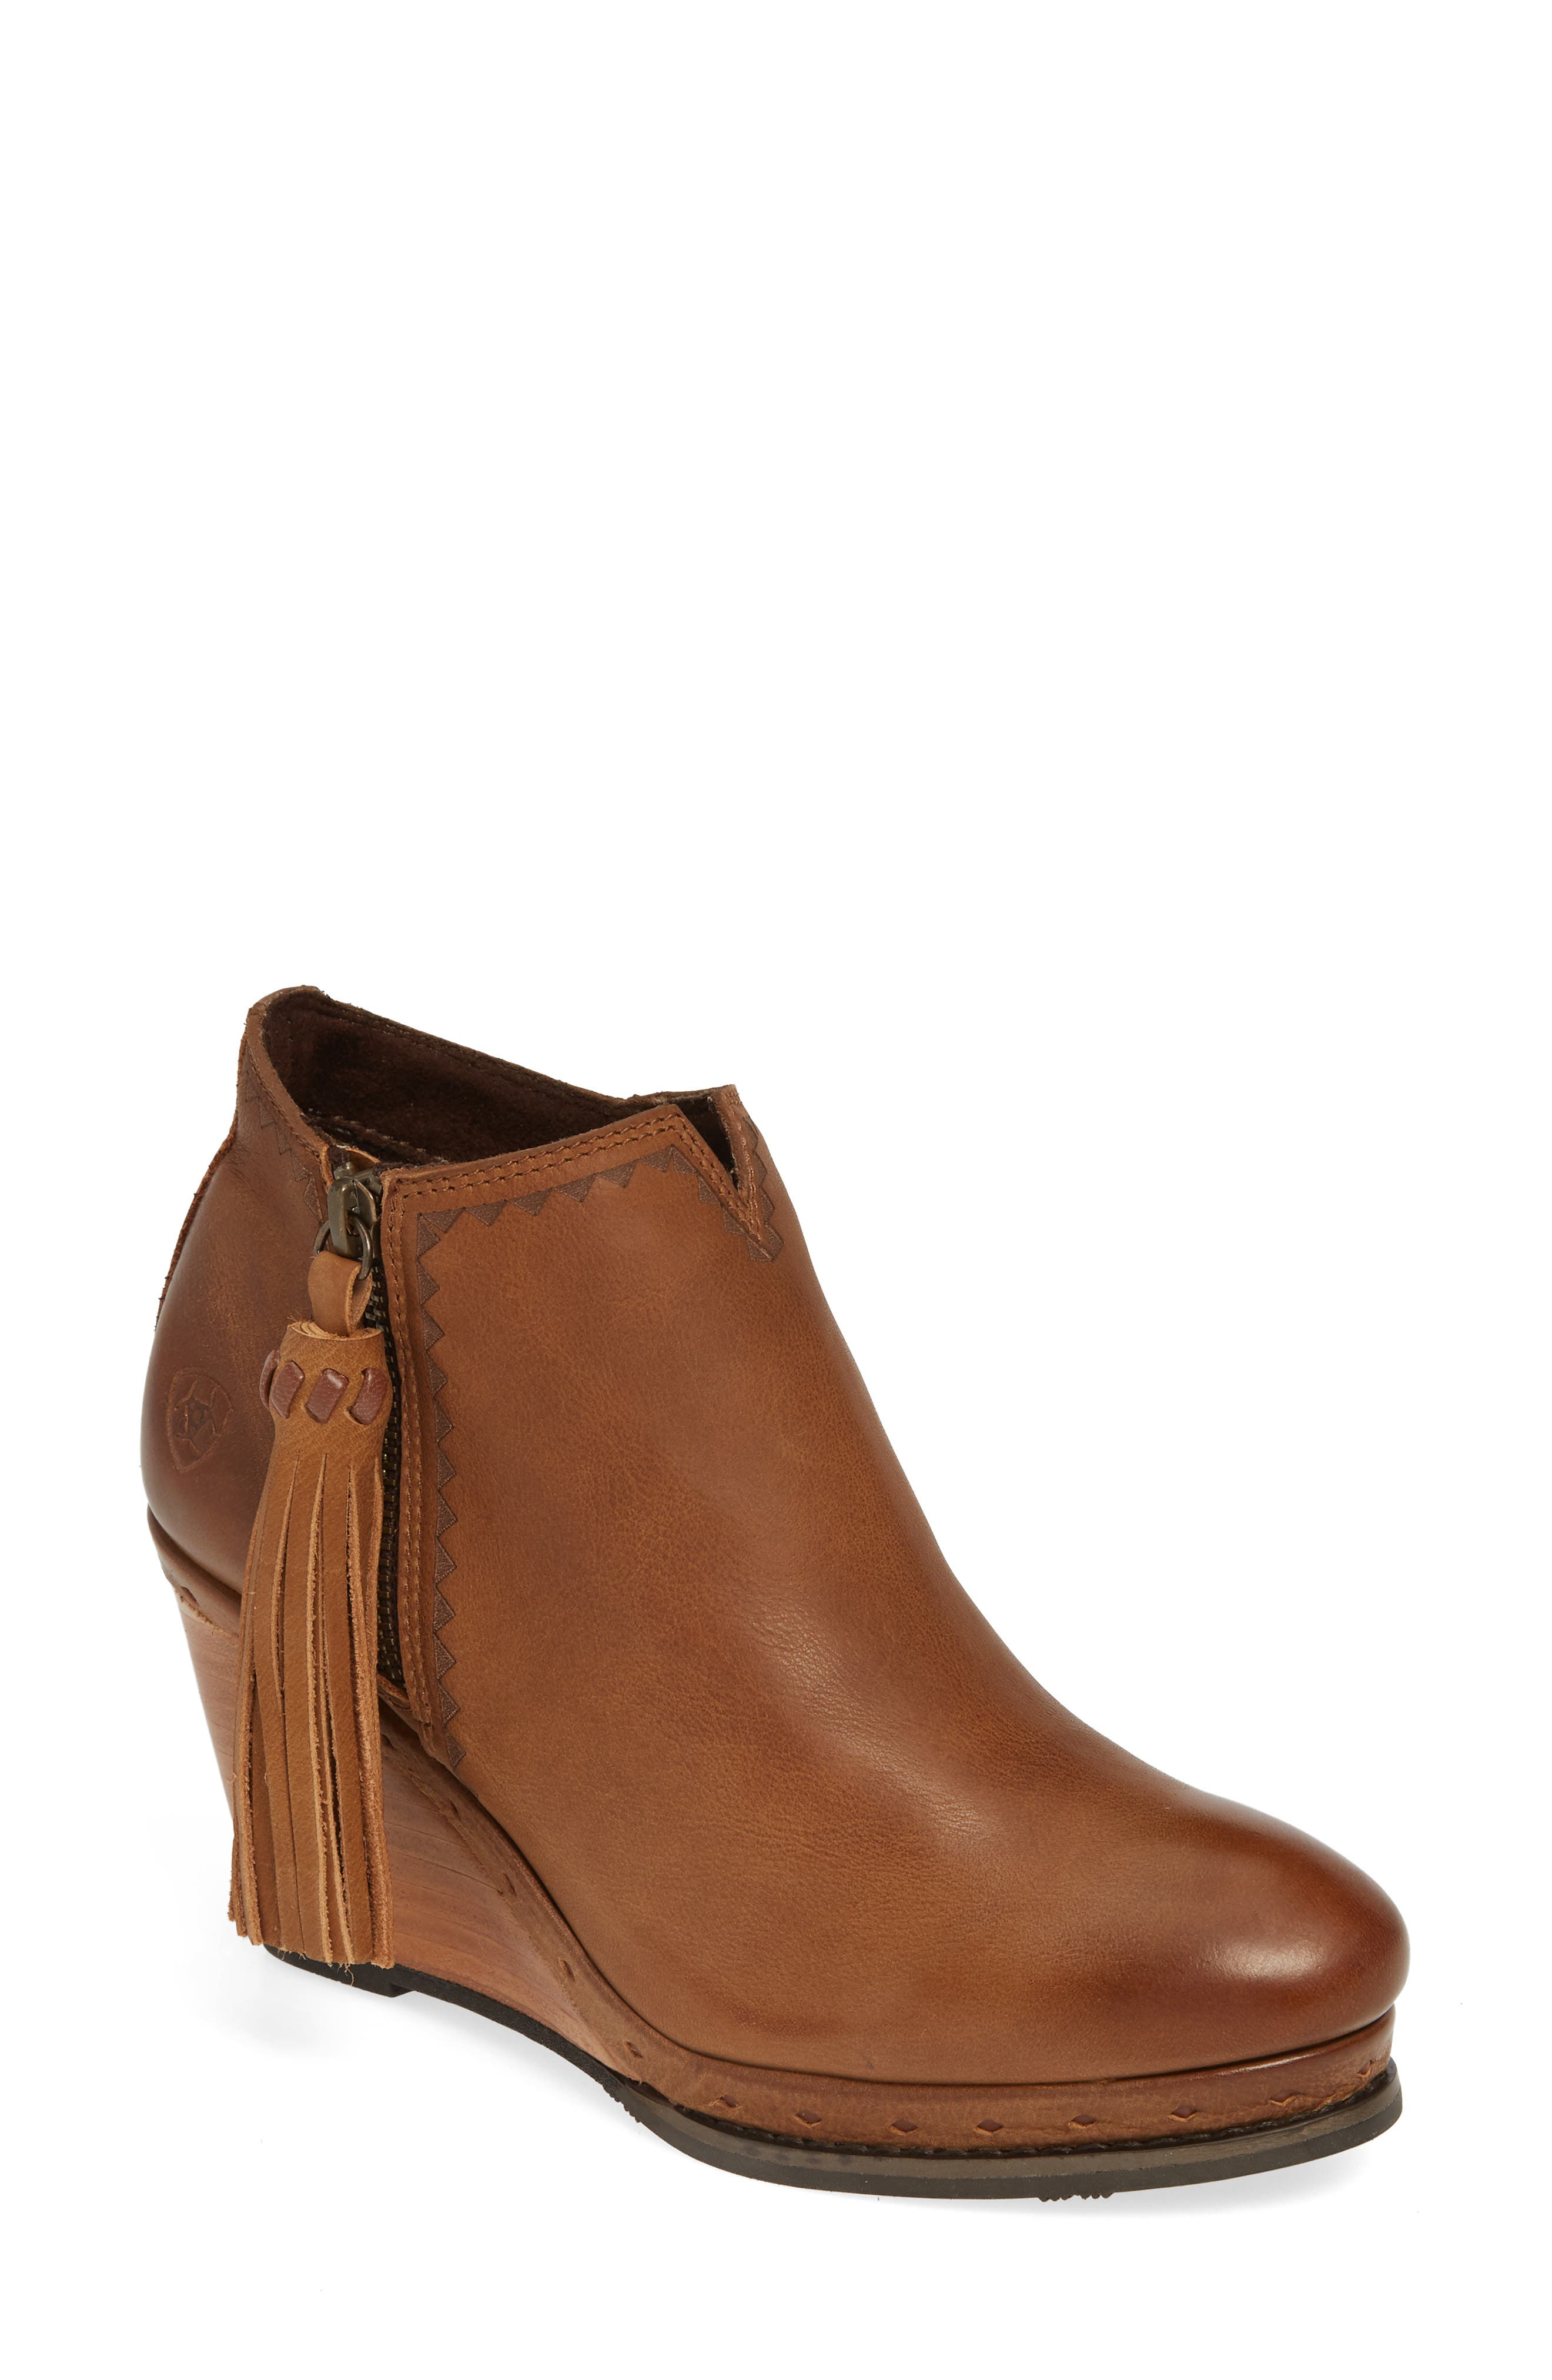 Graceland Wedge Bootie, Main, color, OXFORD TAN LEATHER